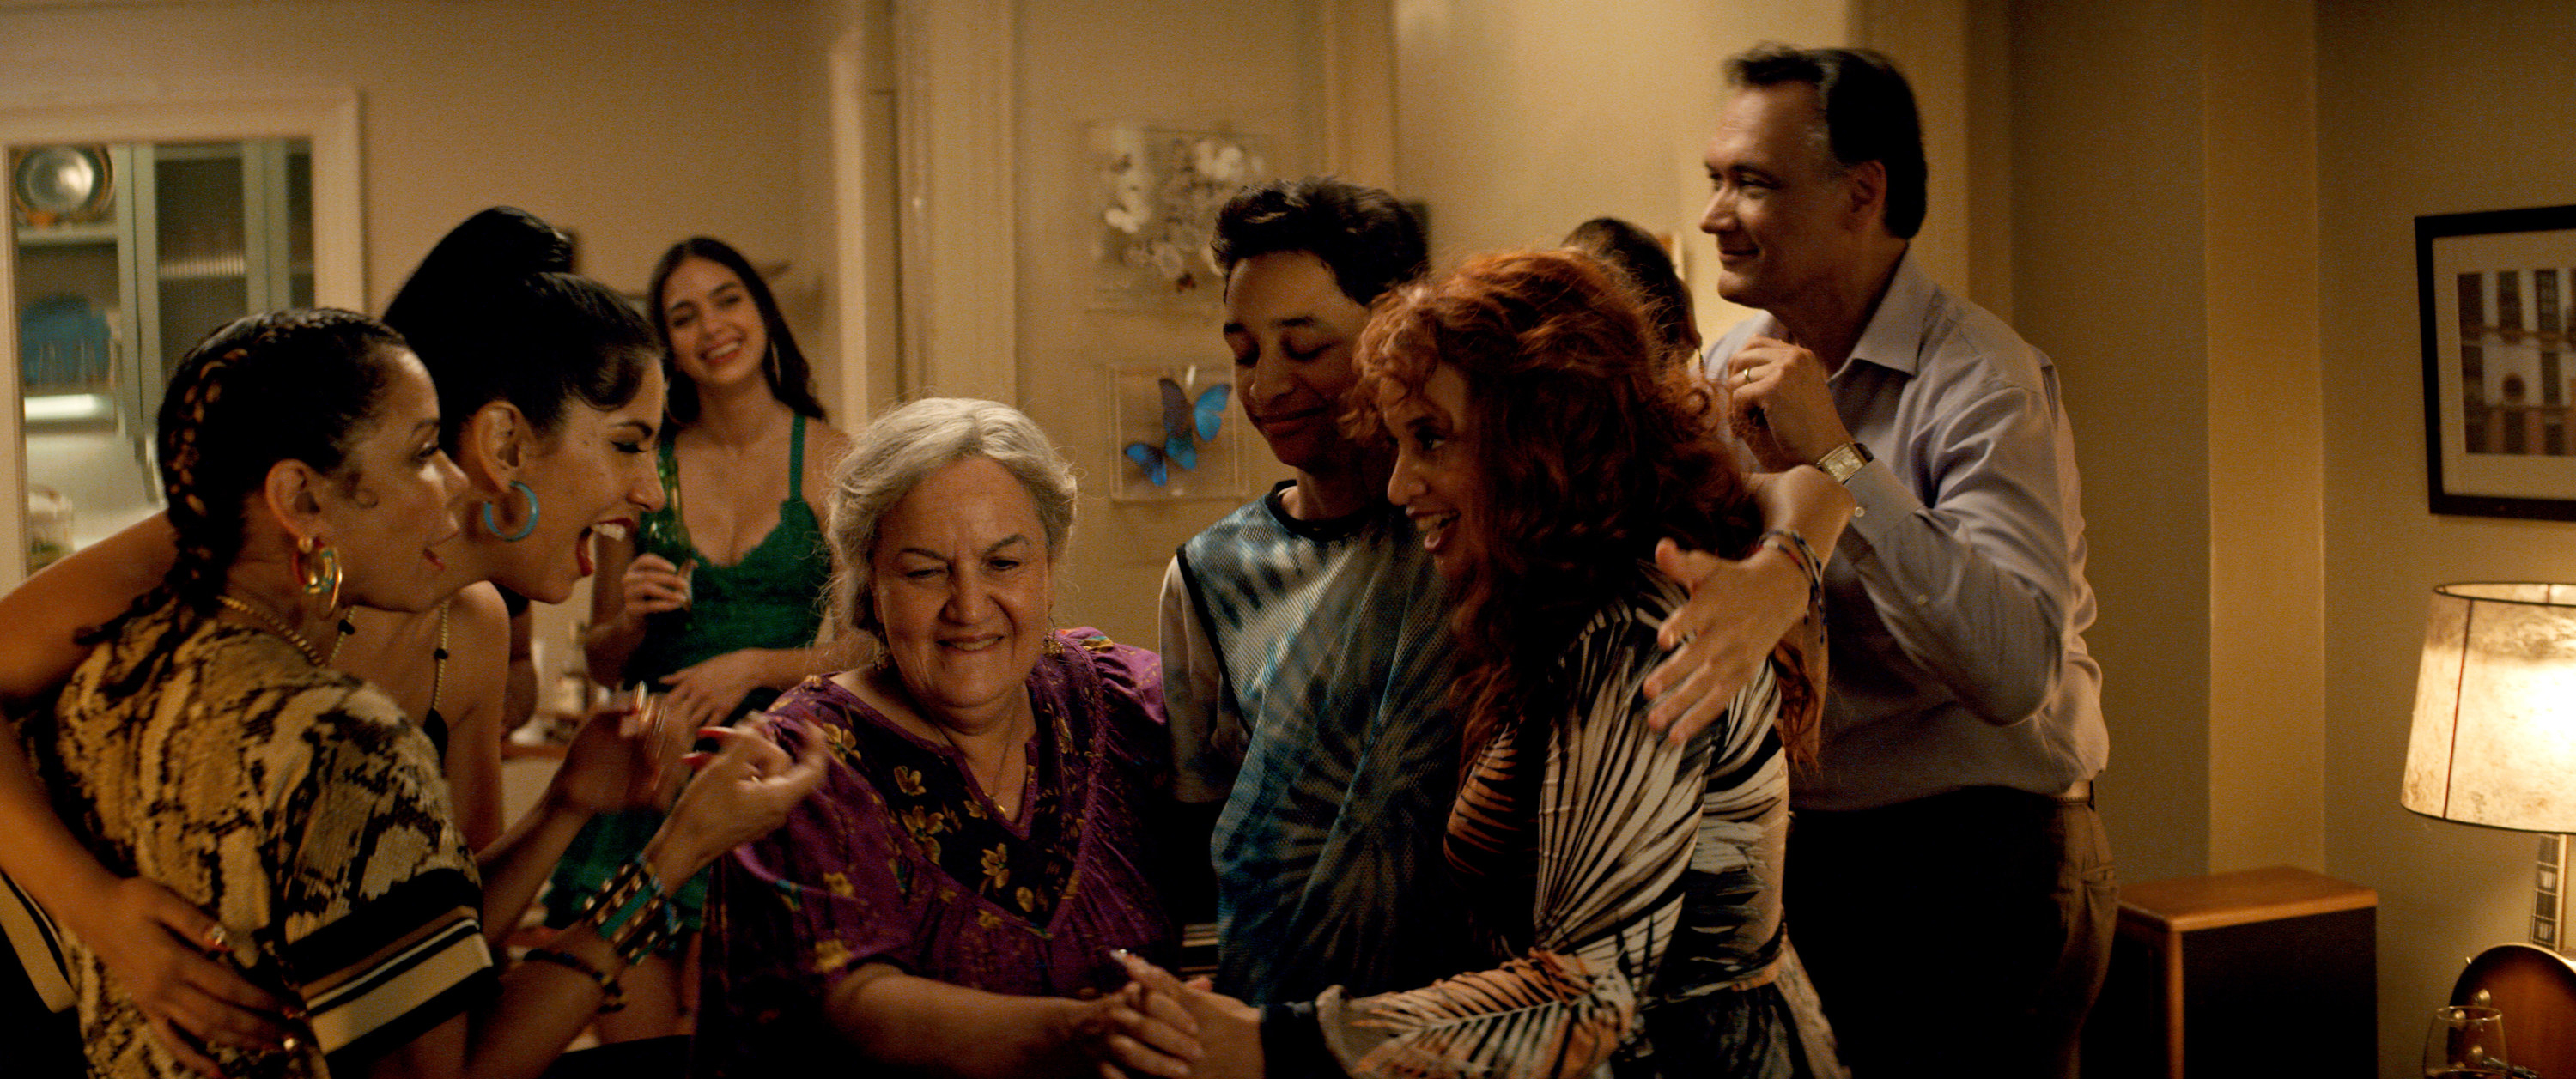 The cast of In The Heights hugging Abuela Claudia in the film